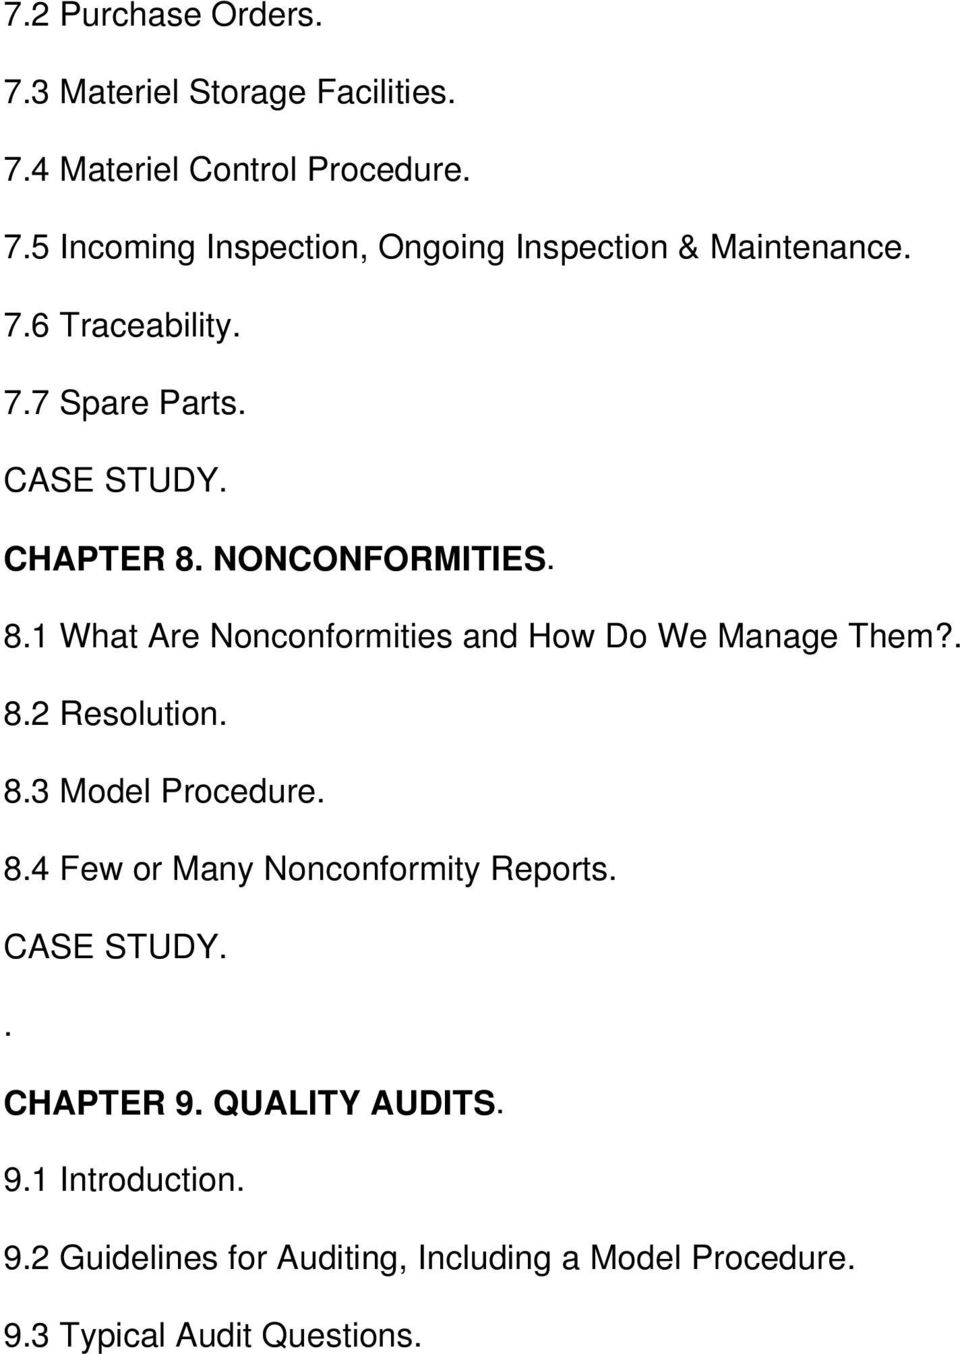 . 8.2 Resolution. 8.3 Model Procedure. 8.4 Few or Many Nonconformity Reports.. CHAPTER 9. QUALITY AUDITS. 9.1 Introduction.